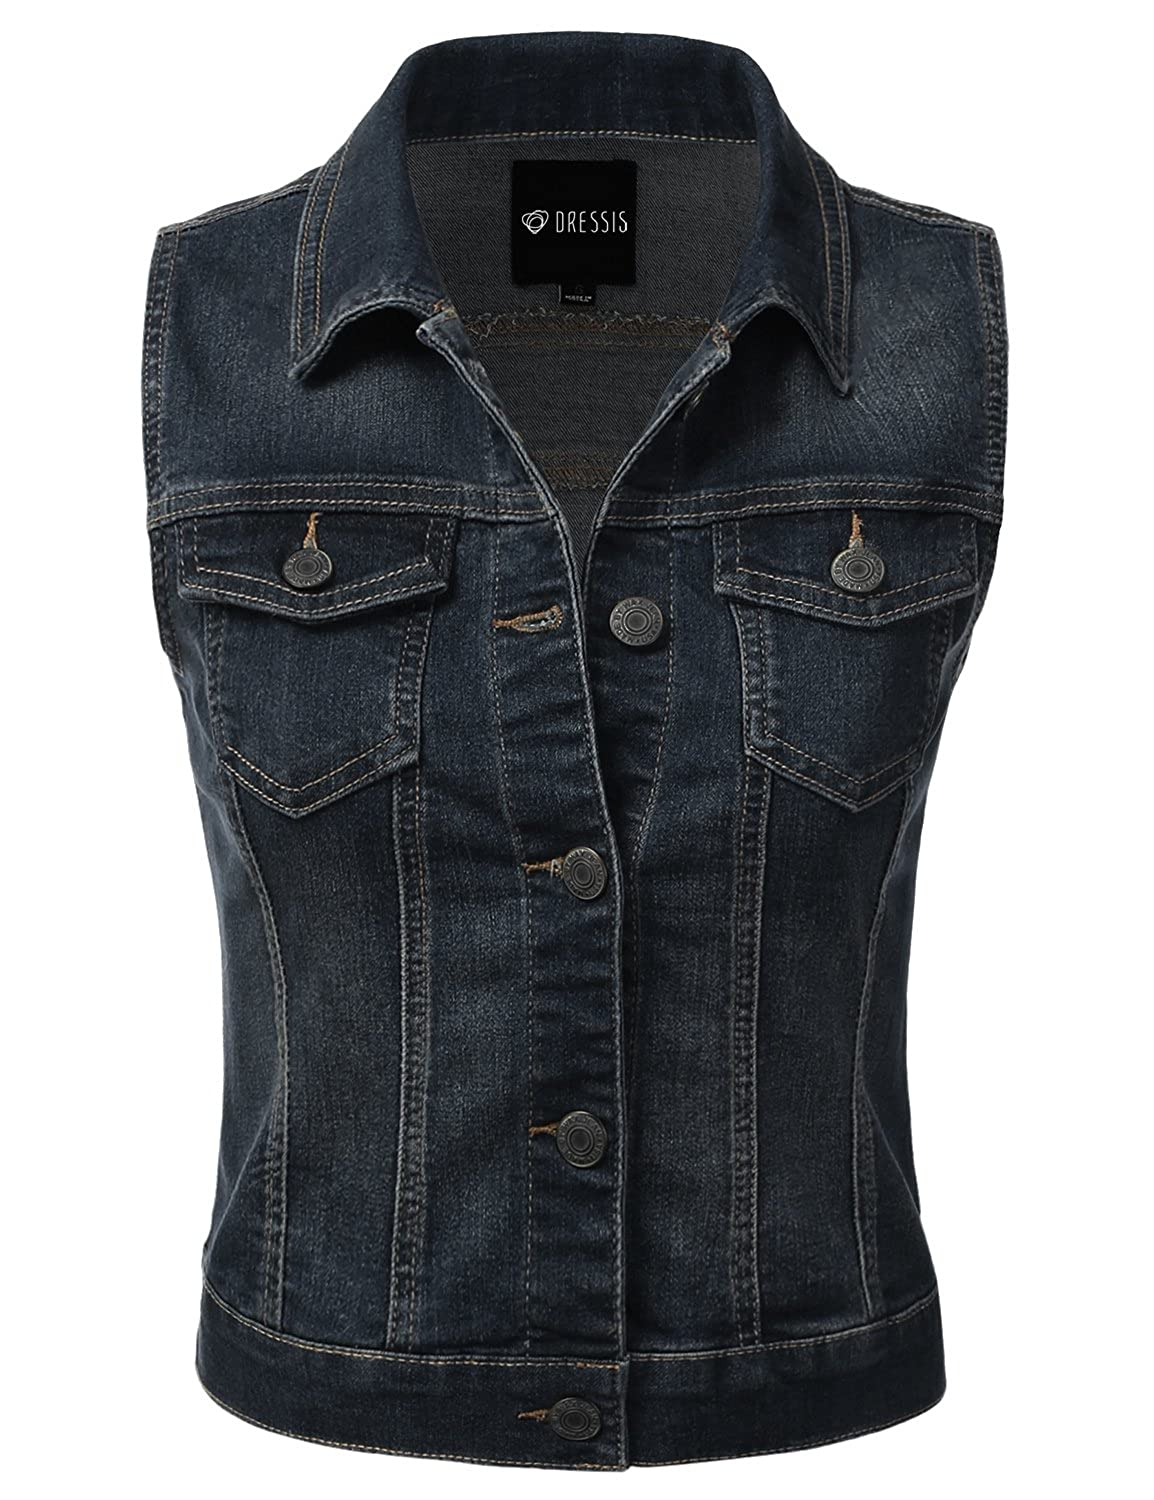 DRESSIS Womens Casual Sleeveless Denim Jean Cropped Vest Jacket